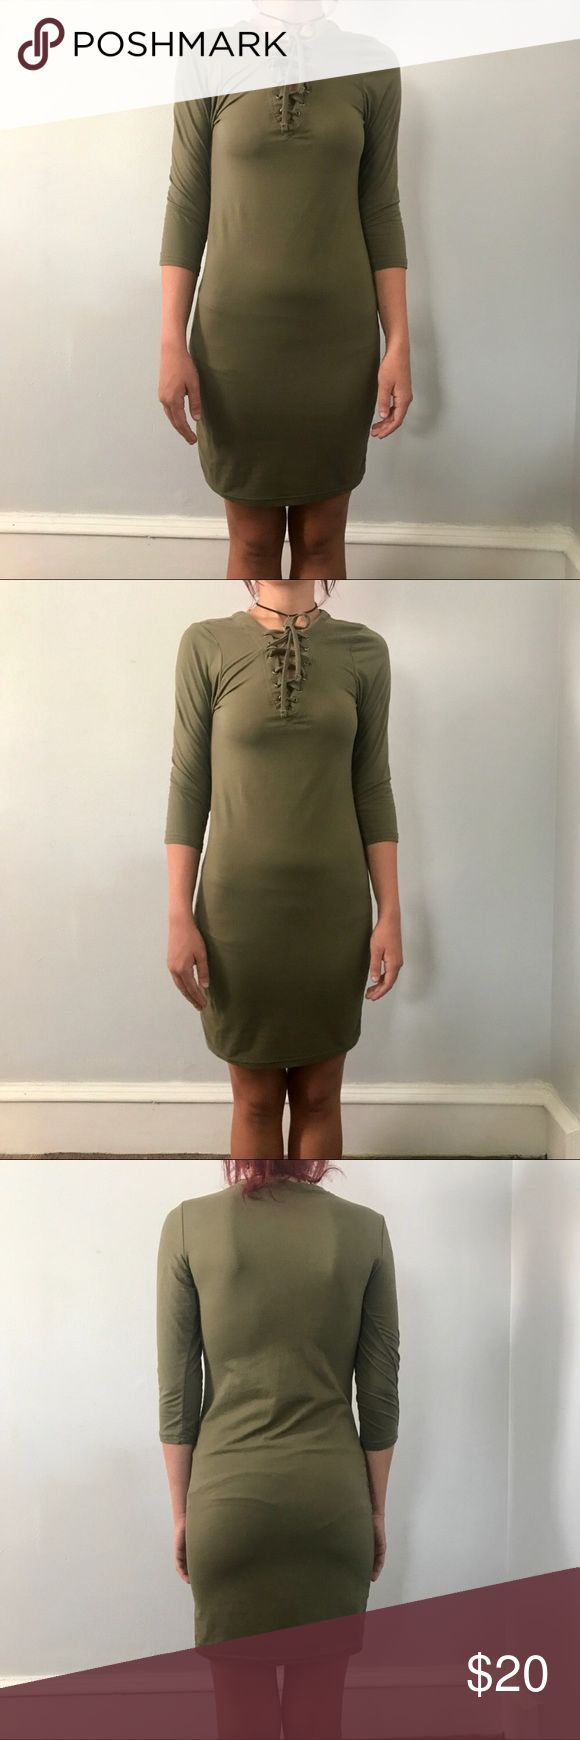 Lace up olive green bodycon dress Lace up olive green quarter sleeves bodycon dress Hot Kiss Dresses Mini